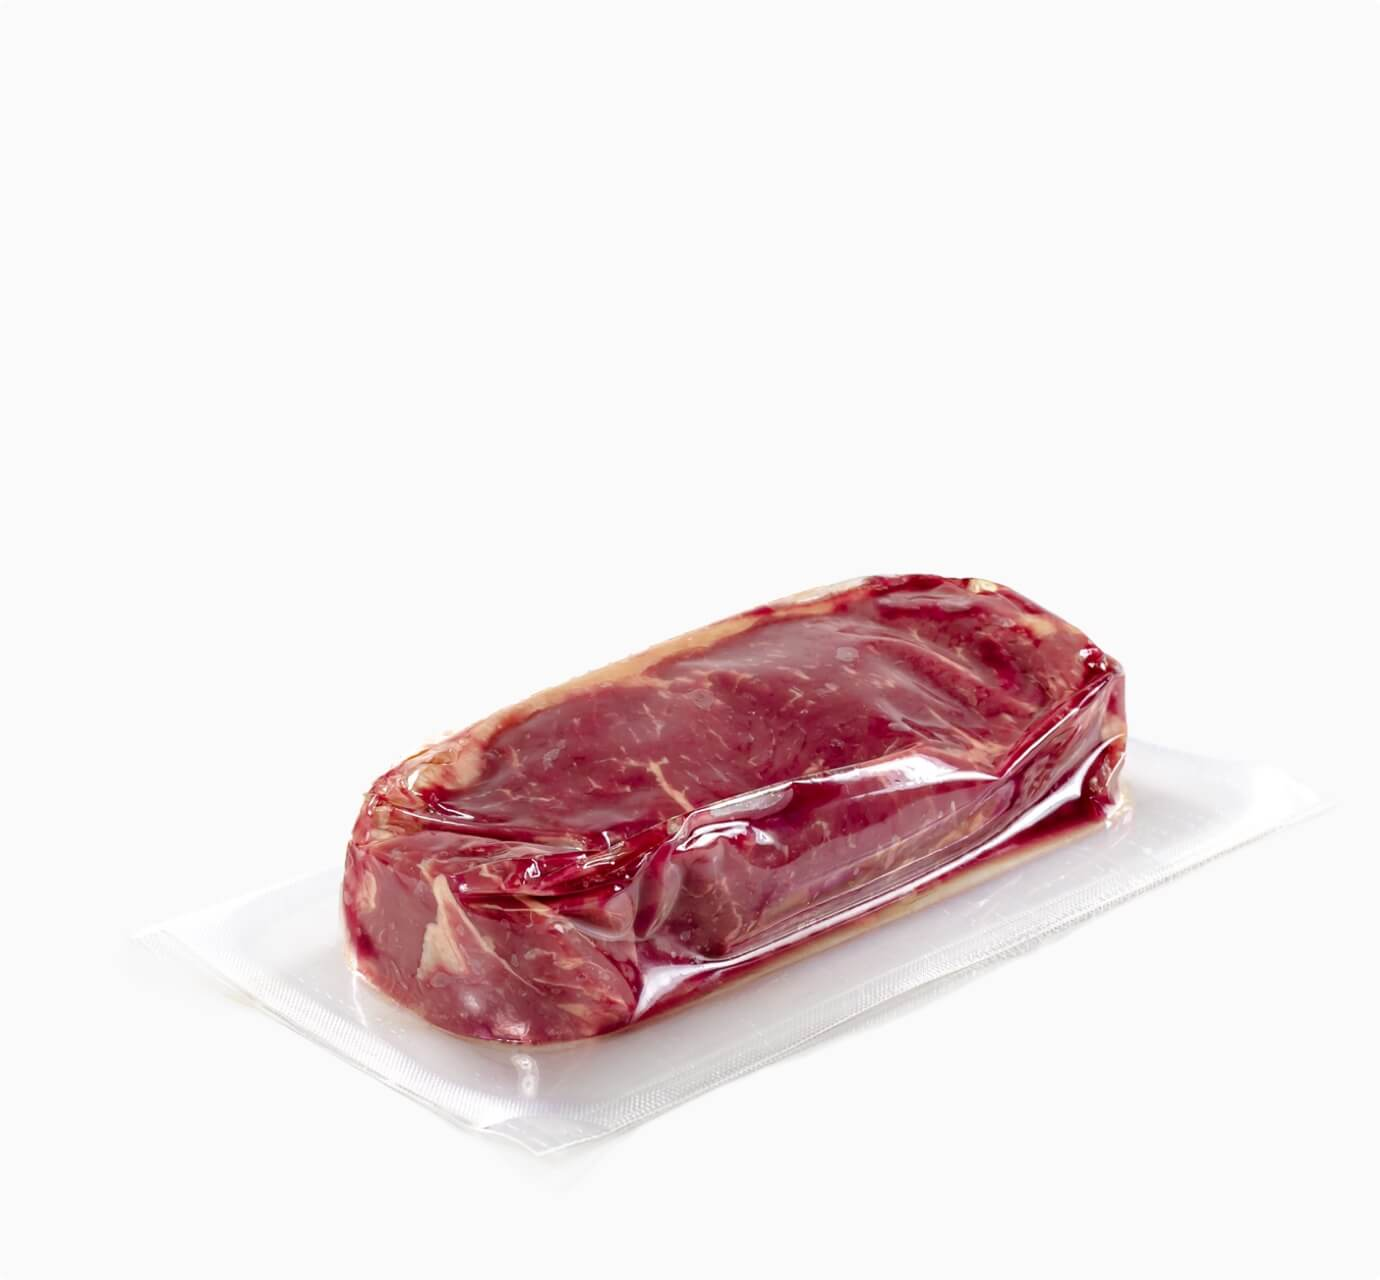 forming and non-forming meat packaging